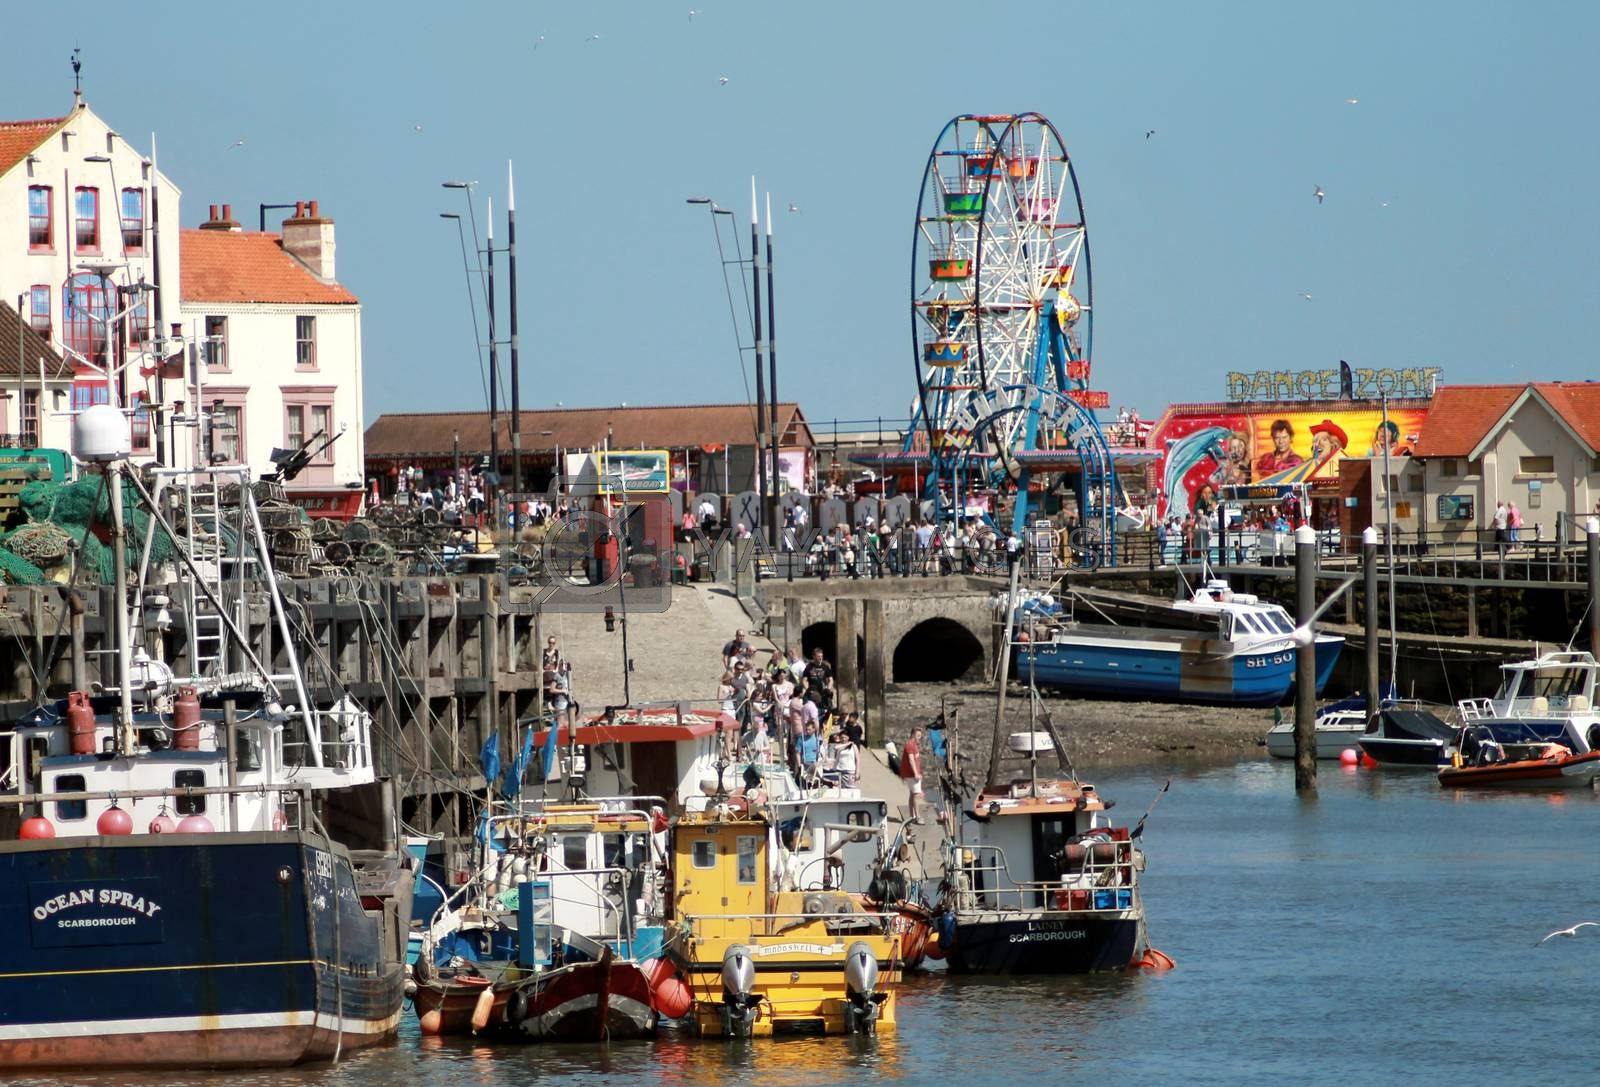 SOUTH BAY HARBOR, SCARBOROUGH, NORTH YORKSHIRE, ENGLAND - 19th of May 2014: Tourists enjoying a day out in Scarborough resort on the 19th of May 2014 This is a popular and tourist destination.